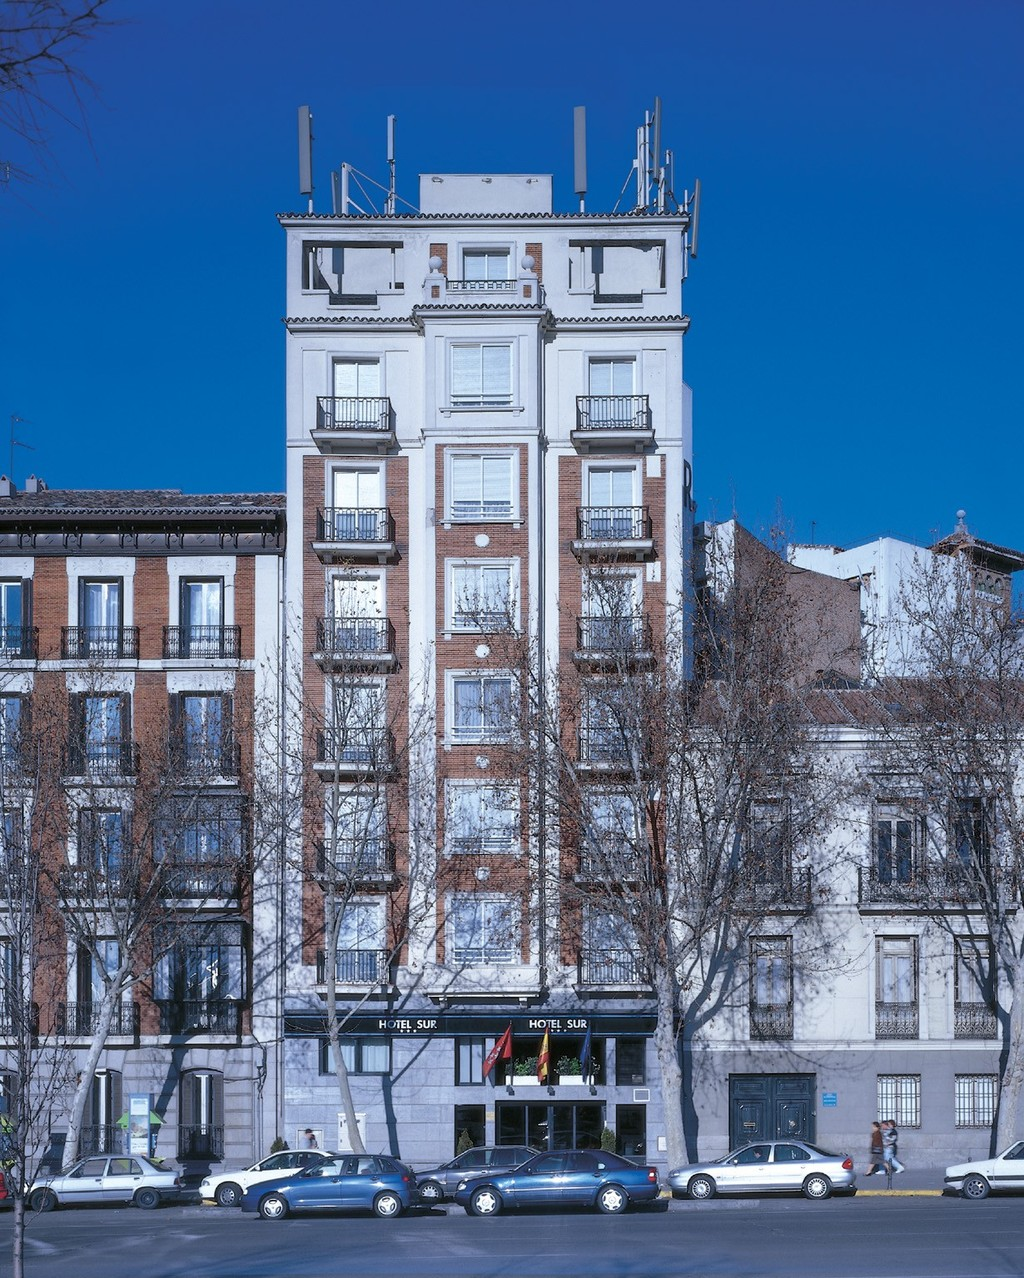 Hotel nh sur madrid spain for Hoteis madrid